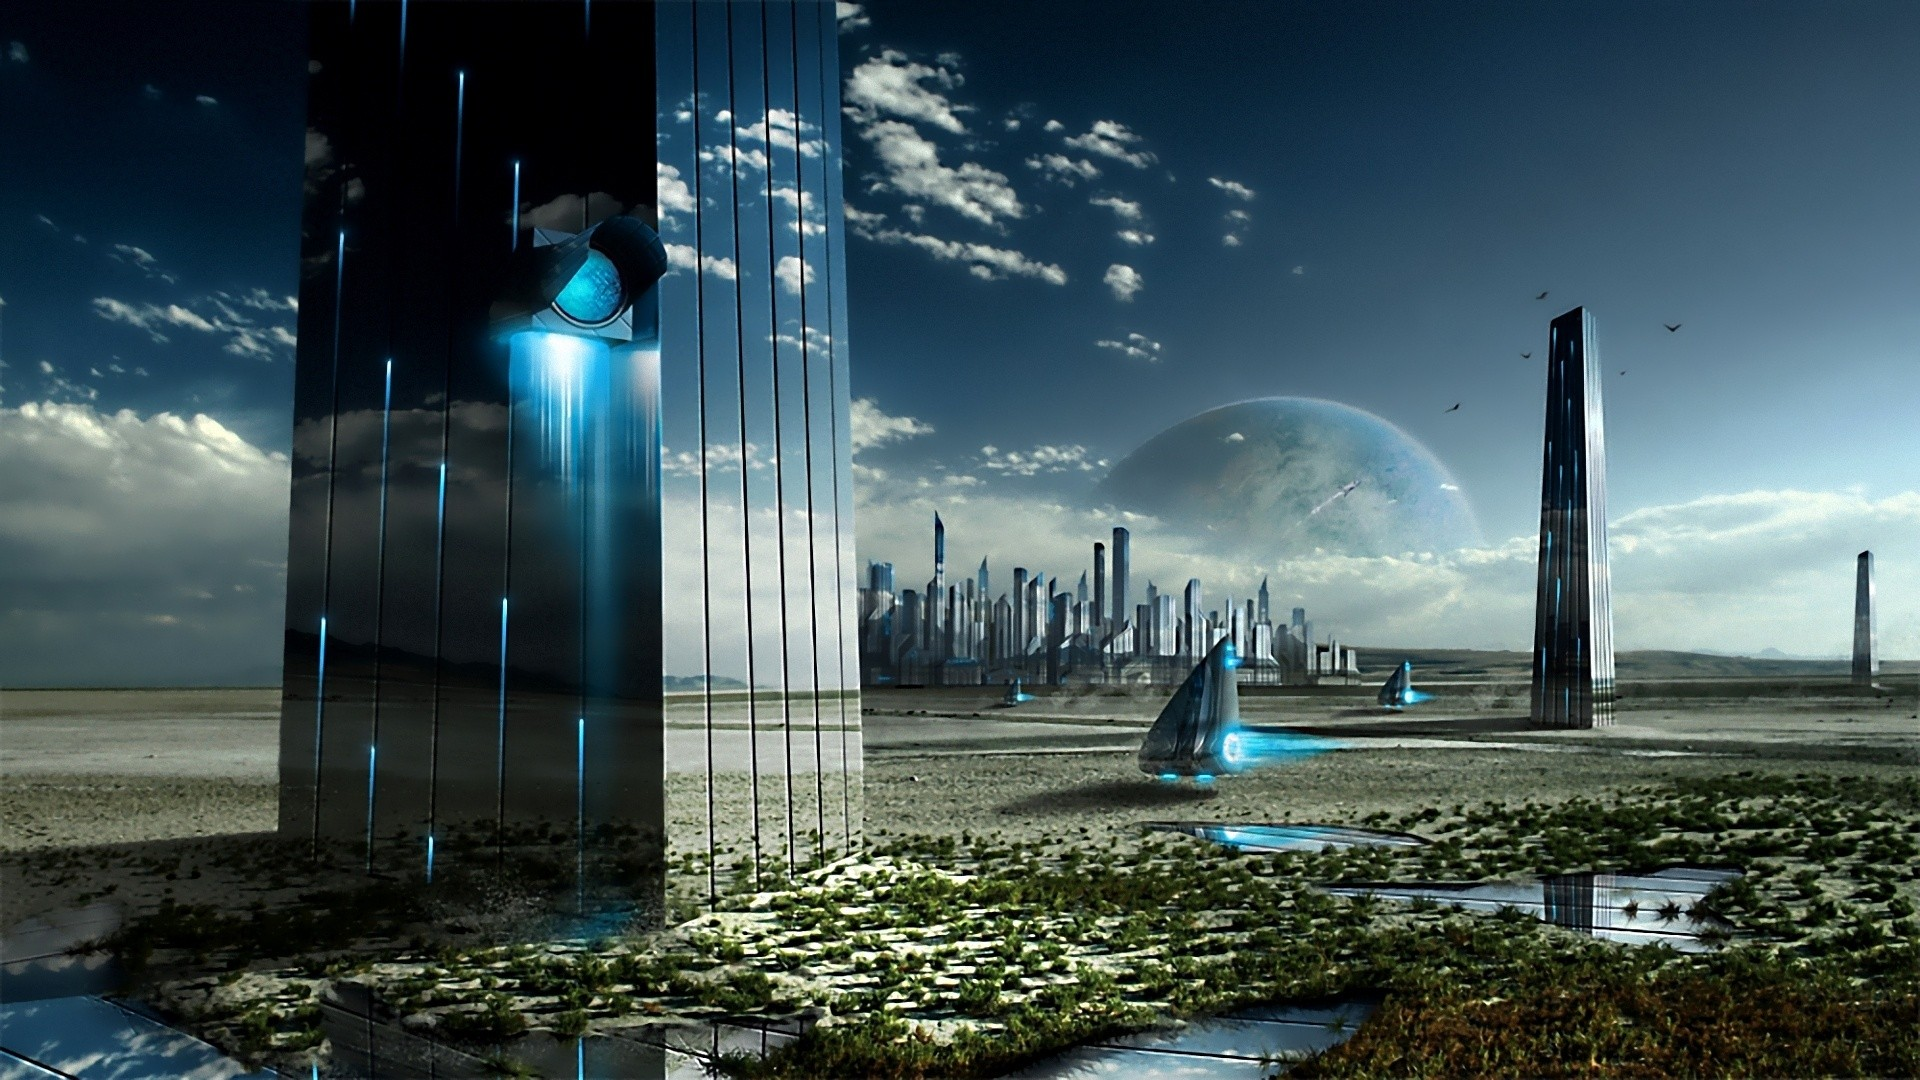 Sci Fi - City  - Future - Futuristic Wallpaper